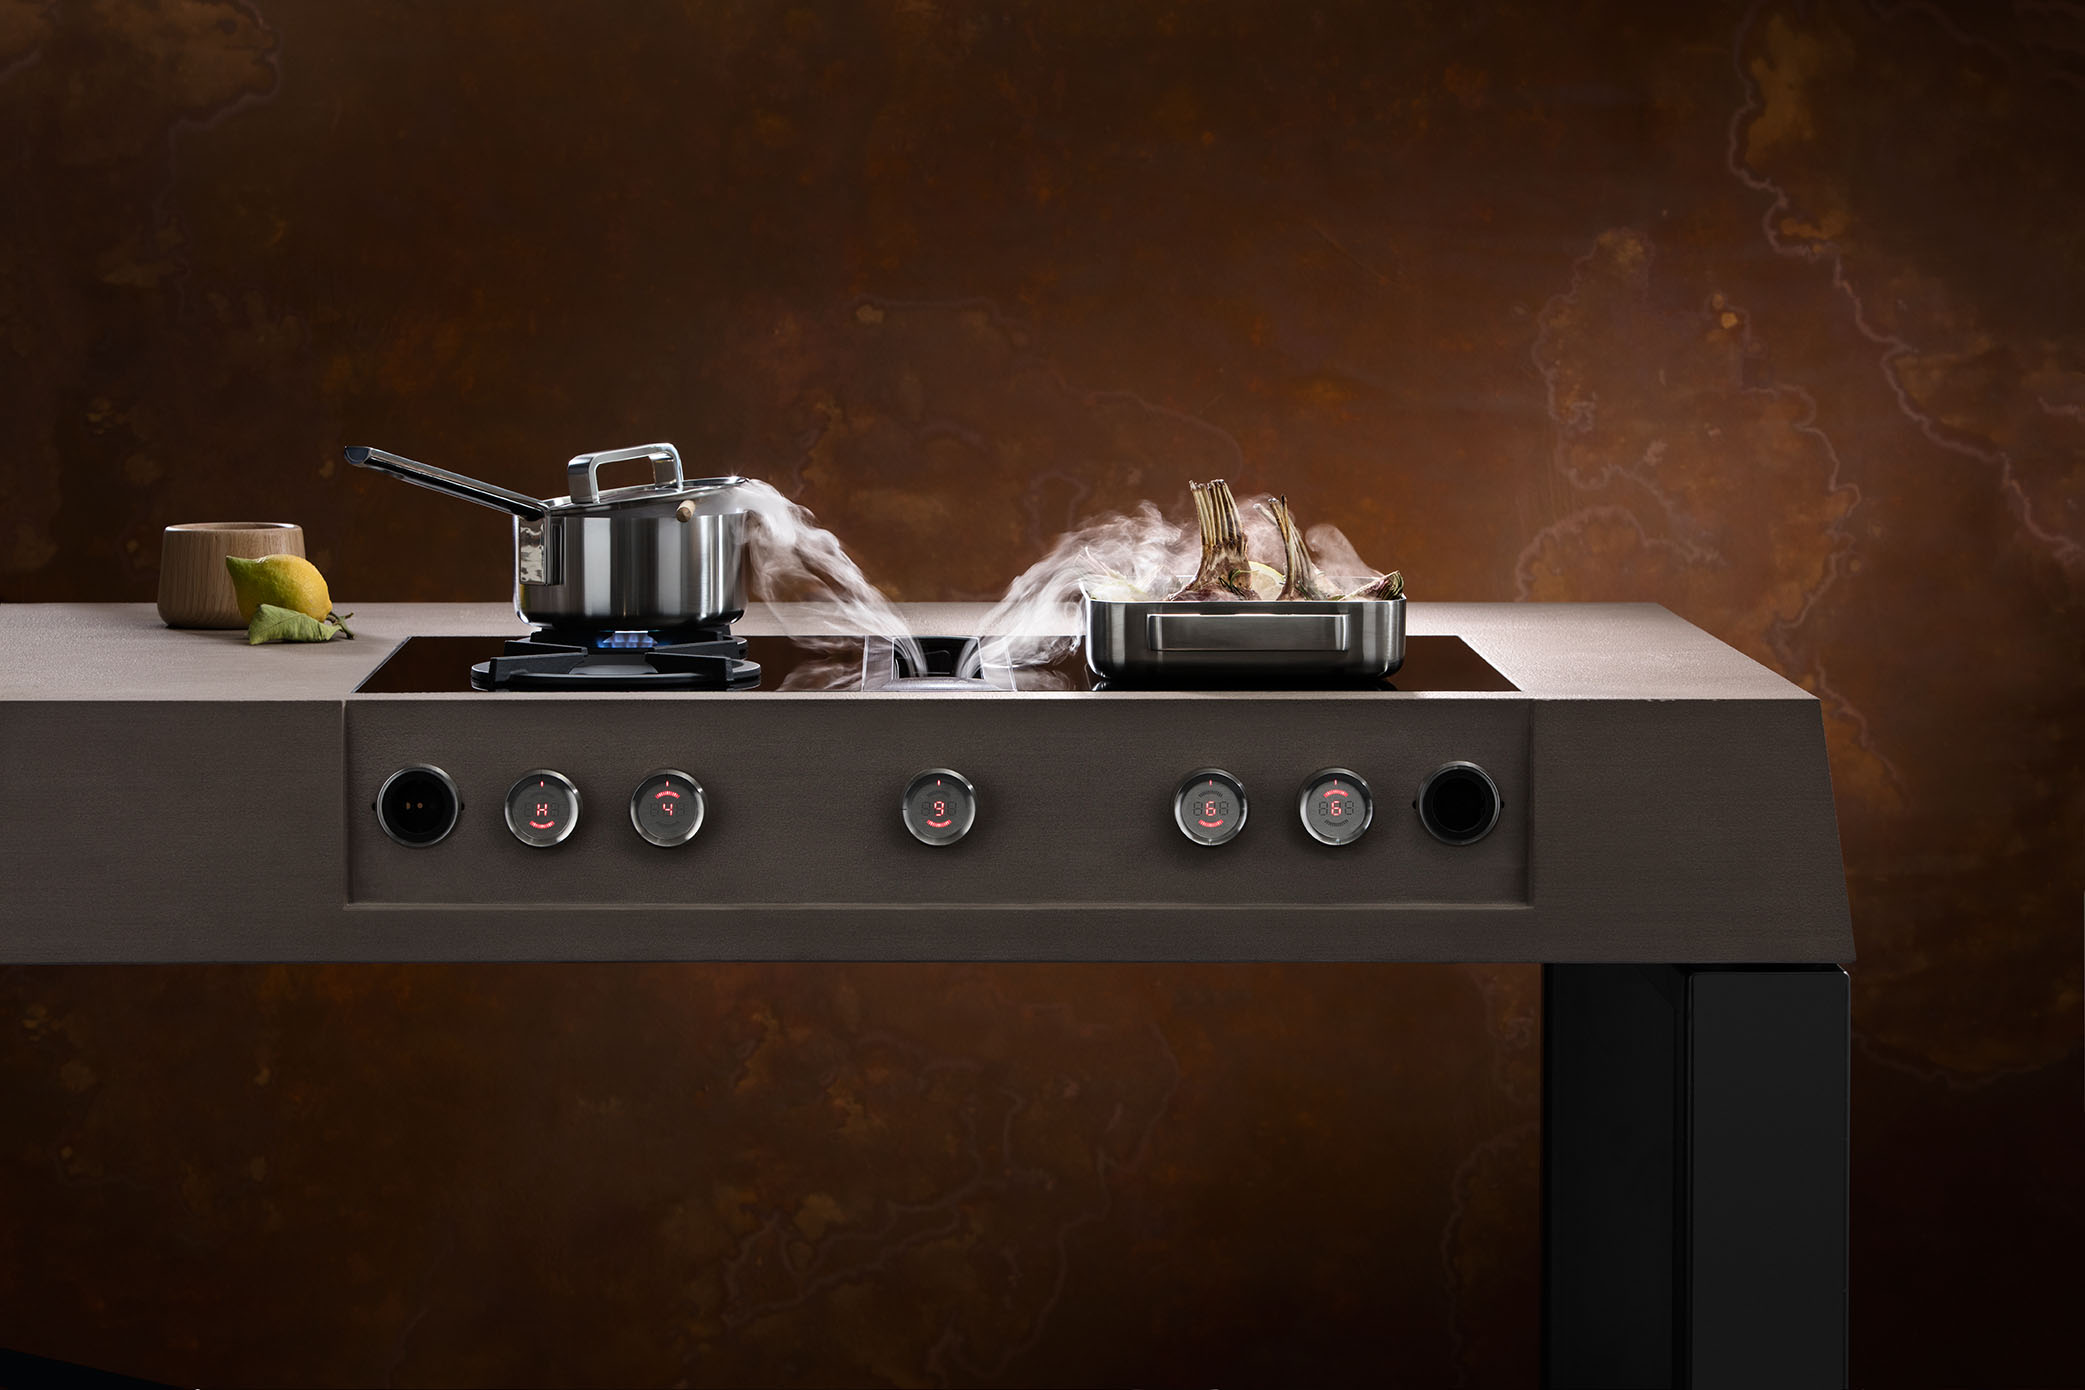 Bora American Company Of High Level Kitchen And Cooling Appliances Will Present The New Professional Cooking System At Next Edition Area30